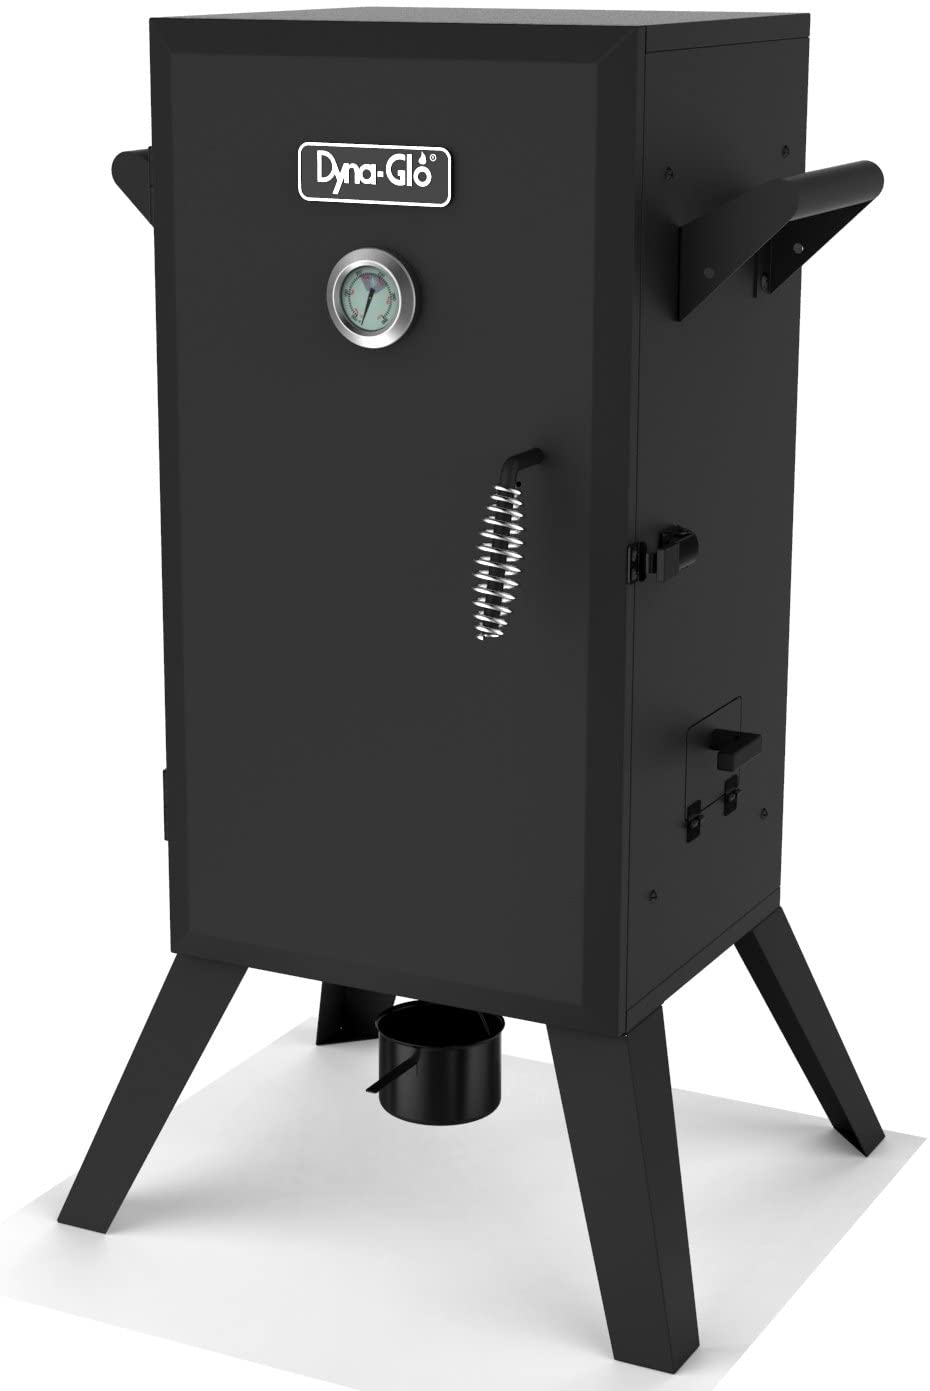 Best Analog: Dyna-Glo-DGU505BAE analog electric smoker